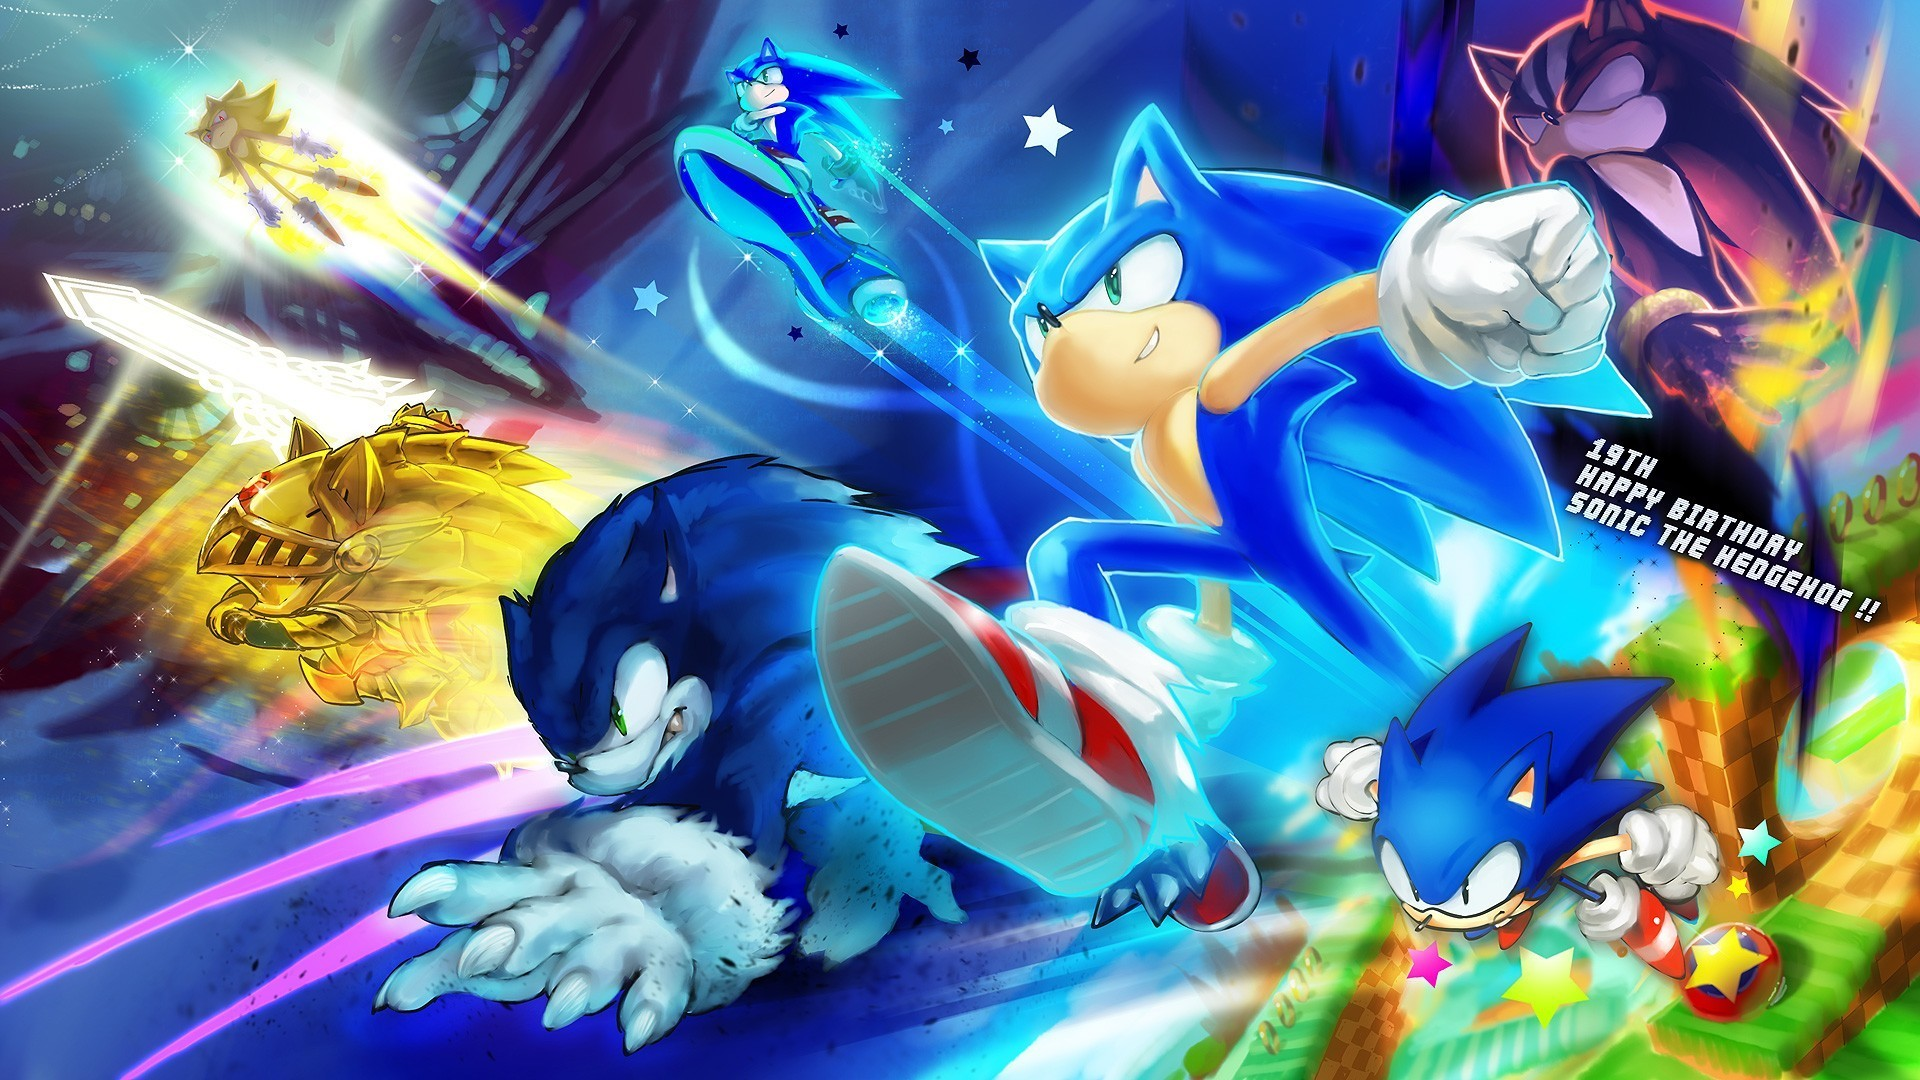 1920x1080 1920x1200 Wallpapers For > Super Sonic And Shadow Wallpaper